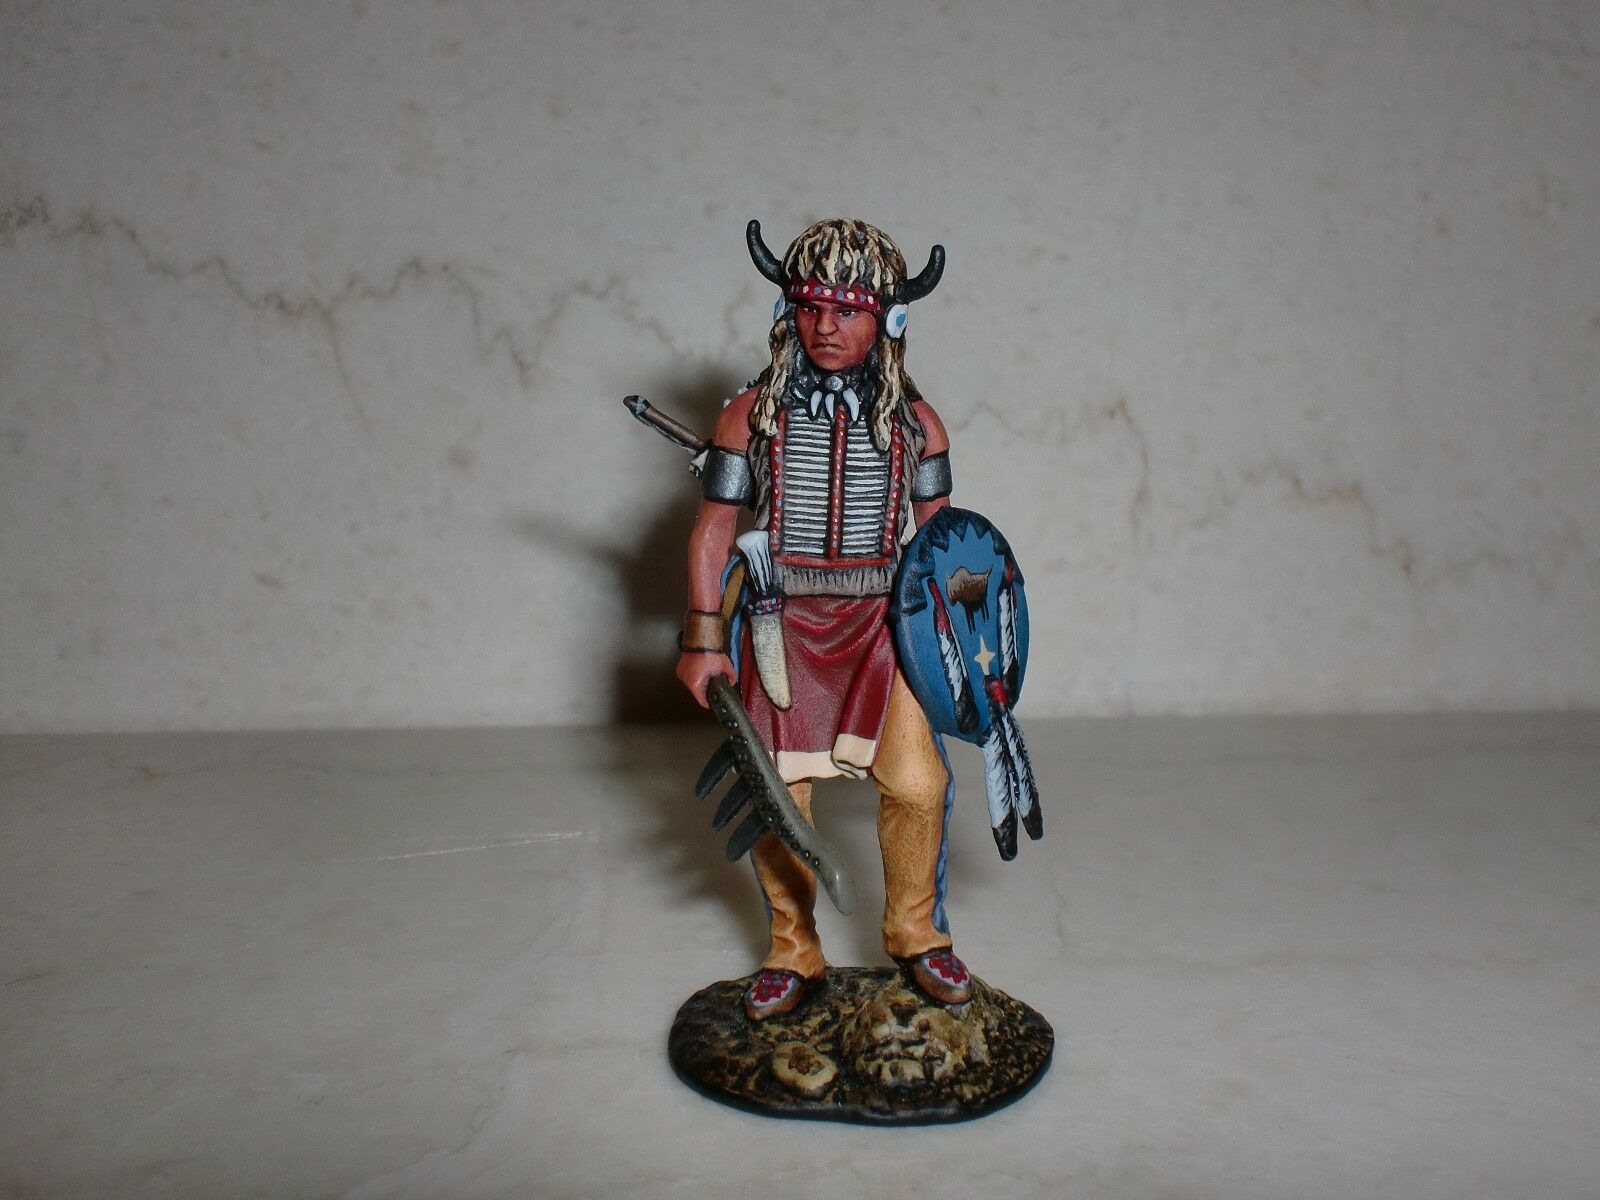 Lead soldier toy.USA. Sioux Warrior,detailed toy,detailed,Elite.handpainted